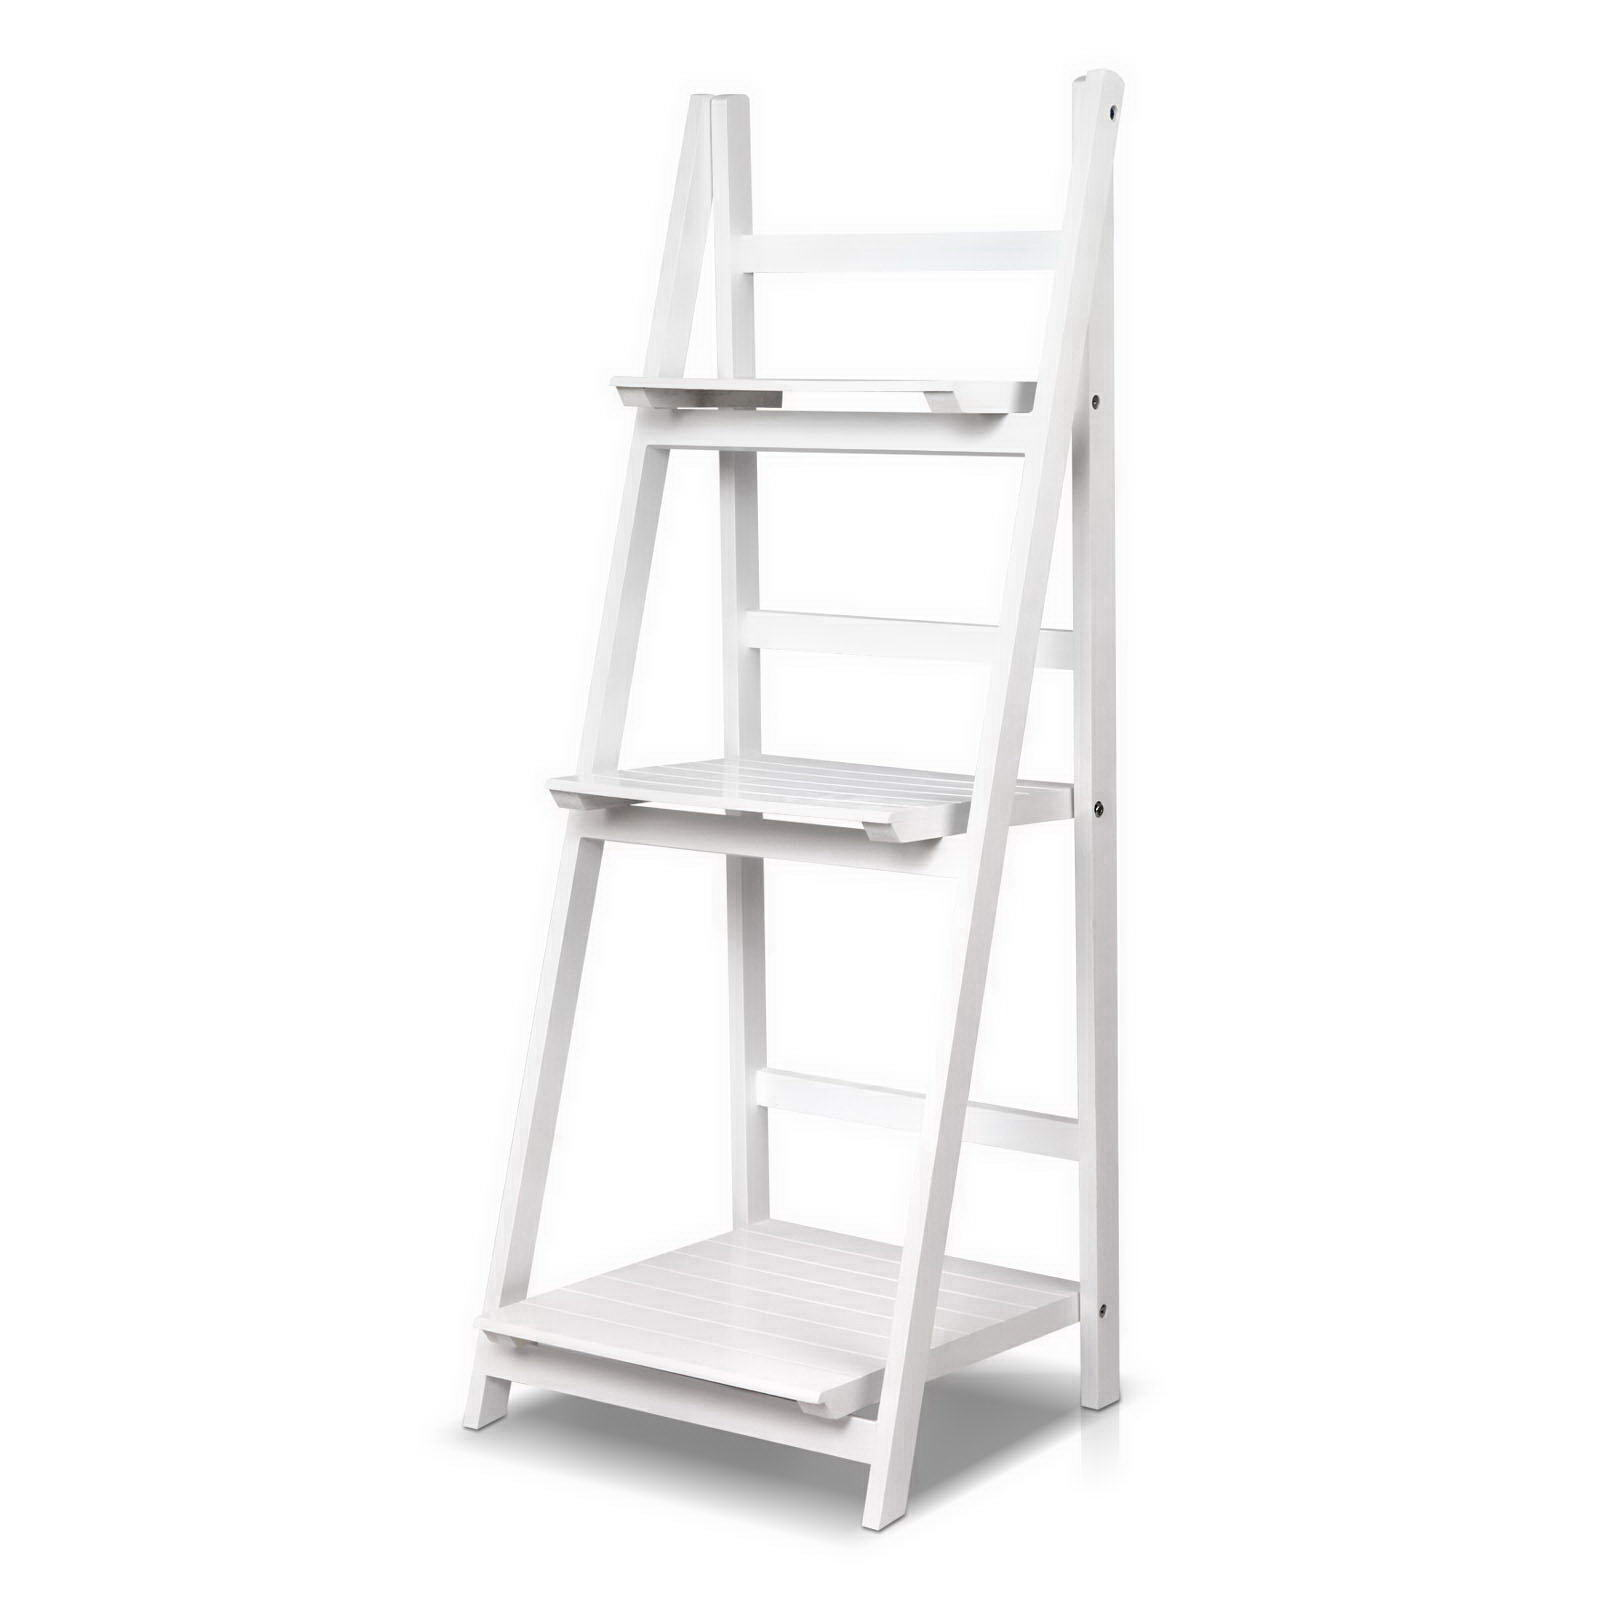 Brand New Artiss Display Shelf 3 Tier Wooden Ladder Stand Storage Book Shelves Rack White Fast Free Shipping